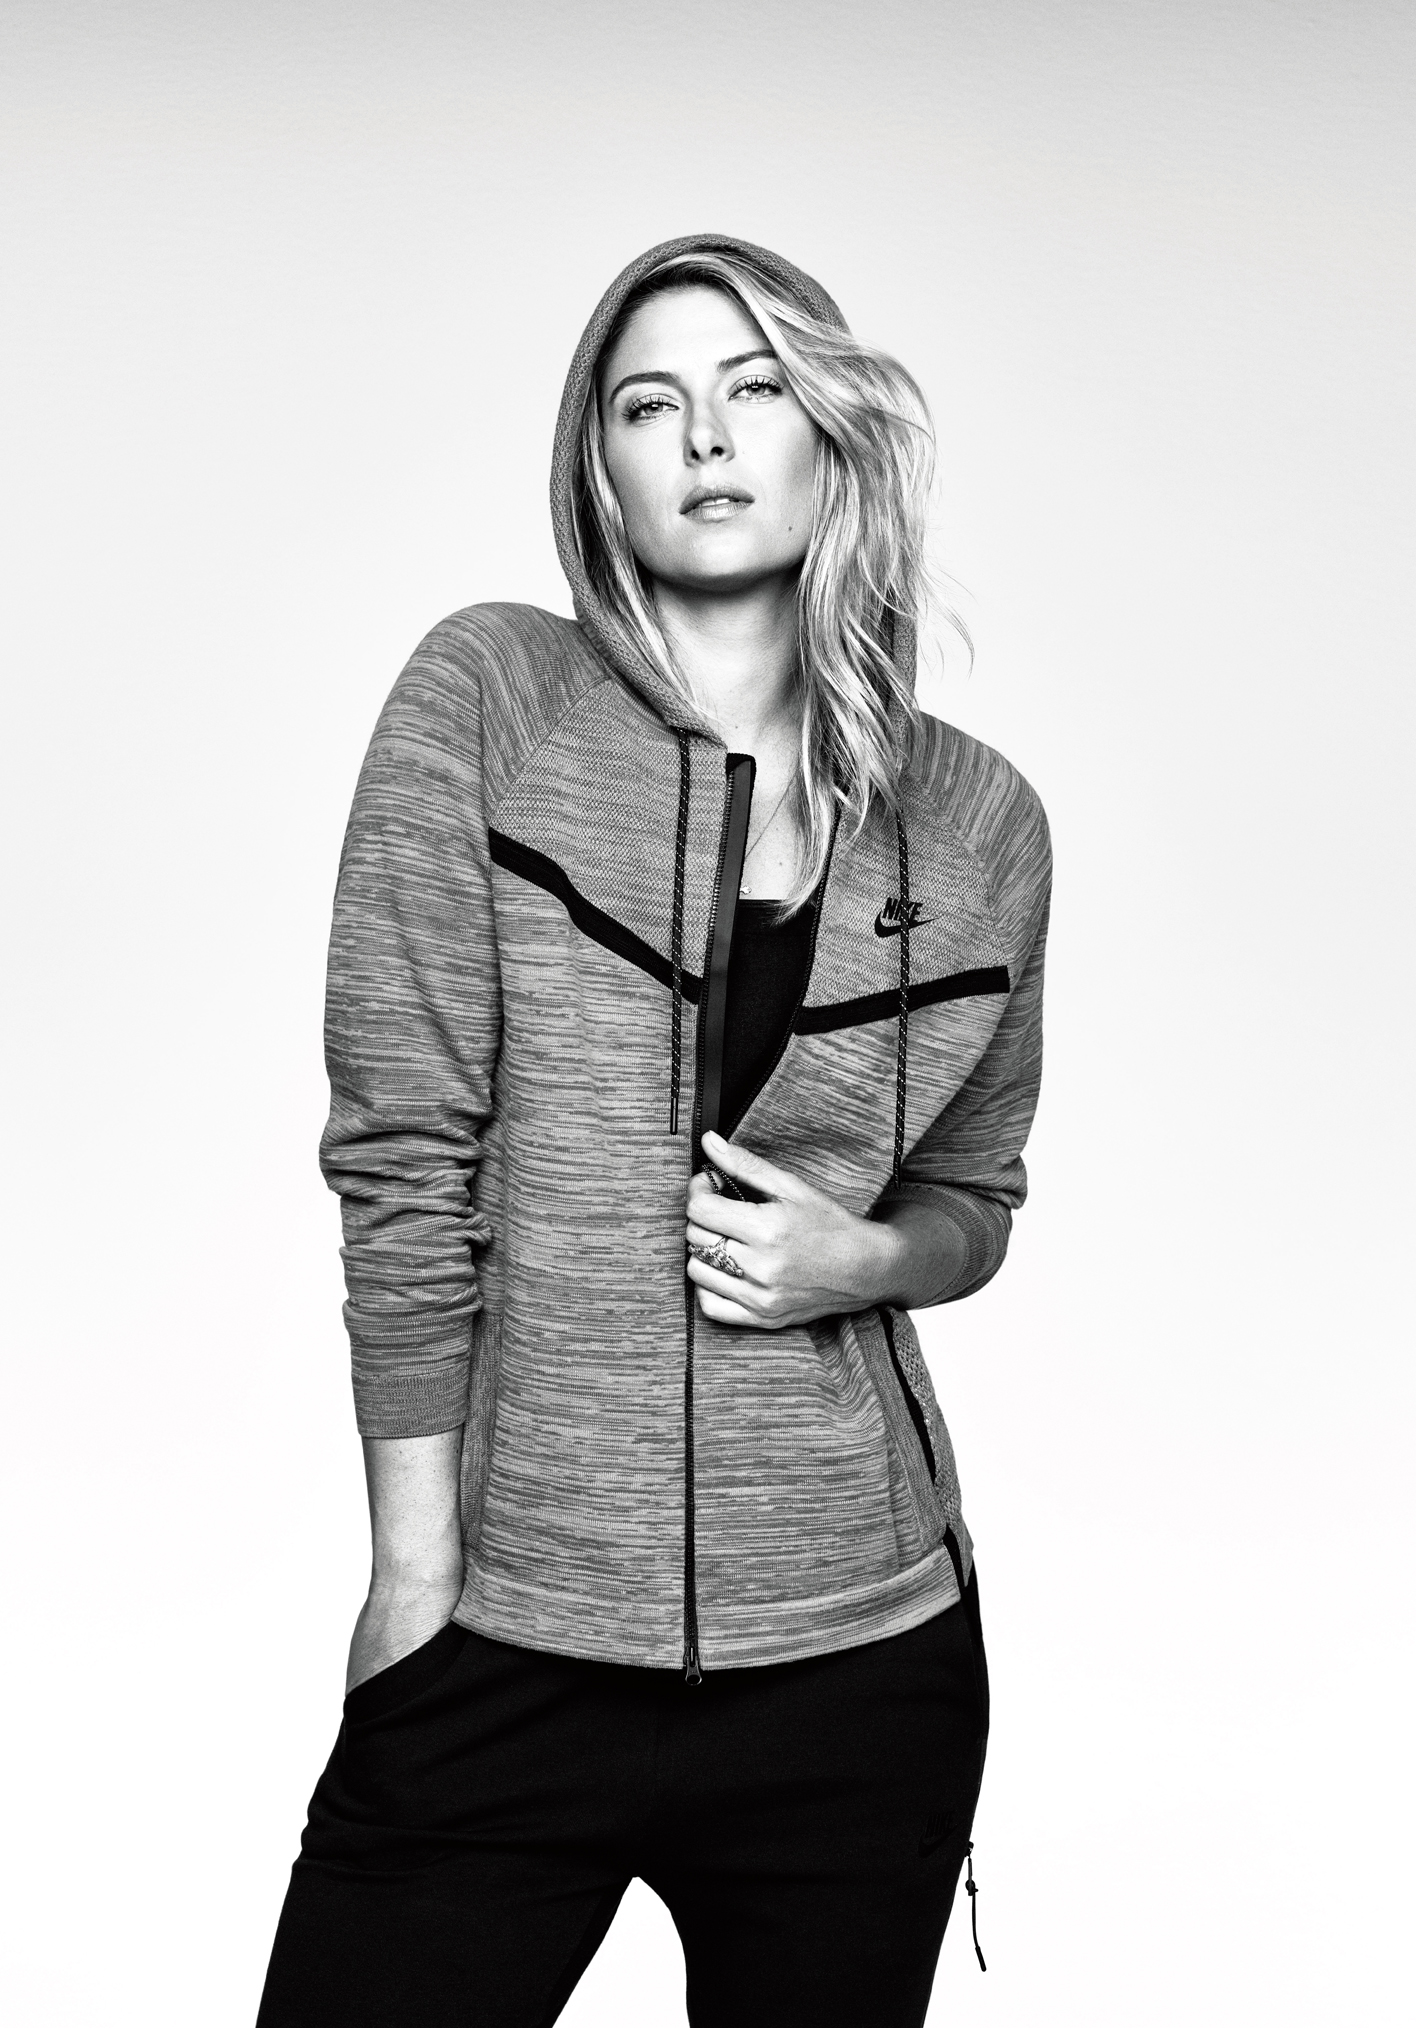 Maria Sharapova featured in Nike's ad campaign for Tech Knit Apparel.